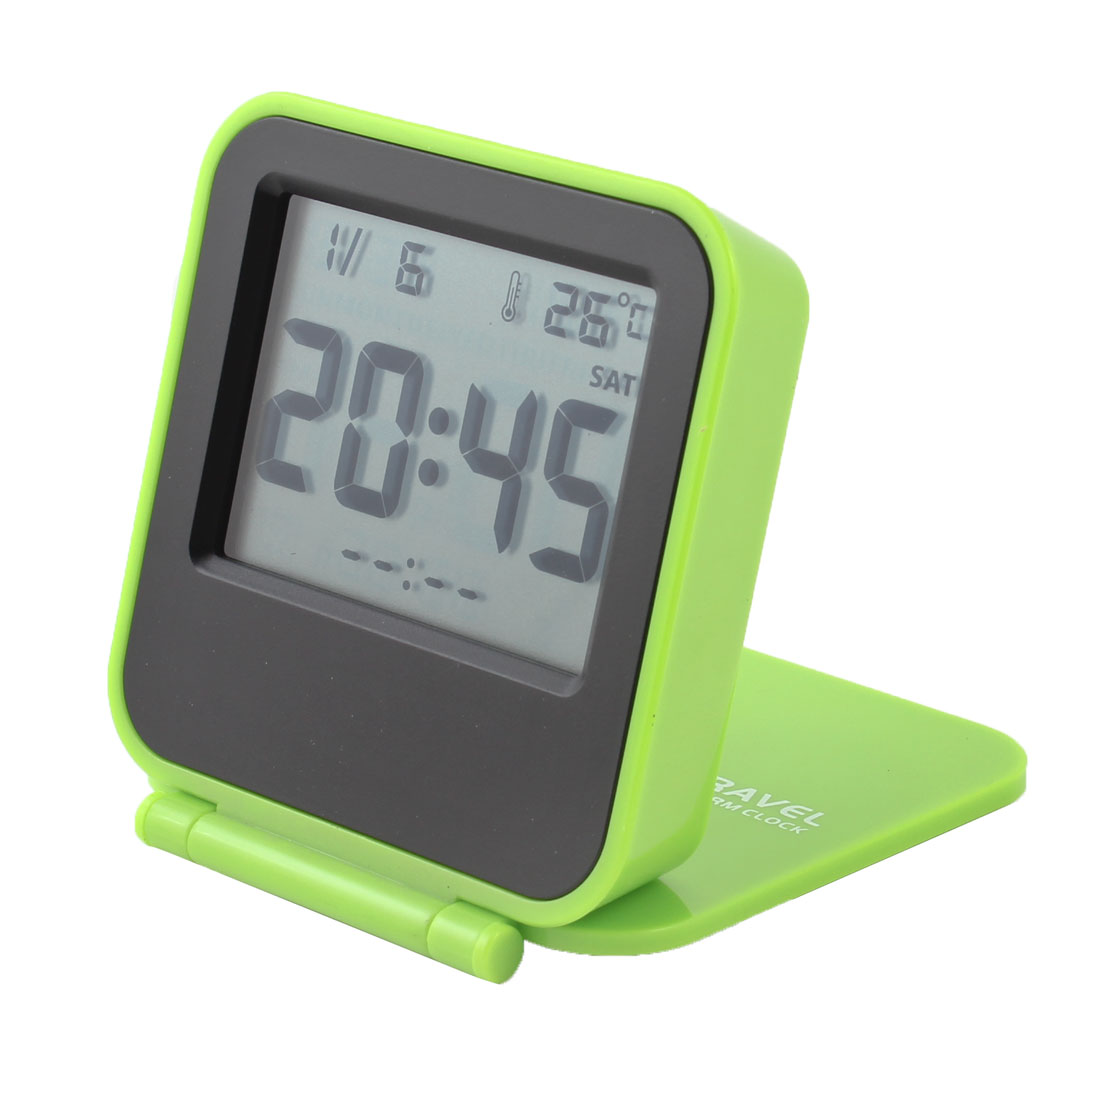 Foldable Alarm Time Temperature LCD Display Digital Clock Green Black